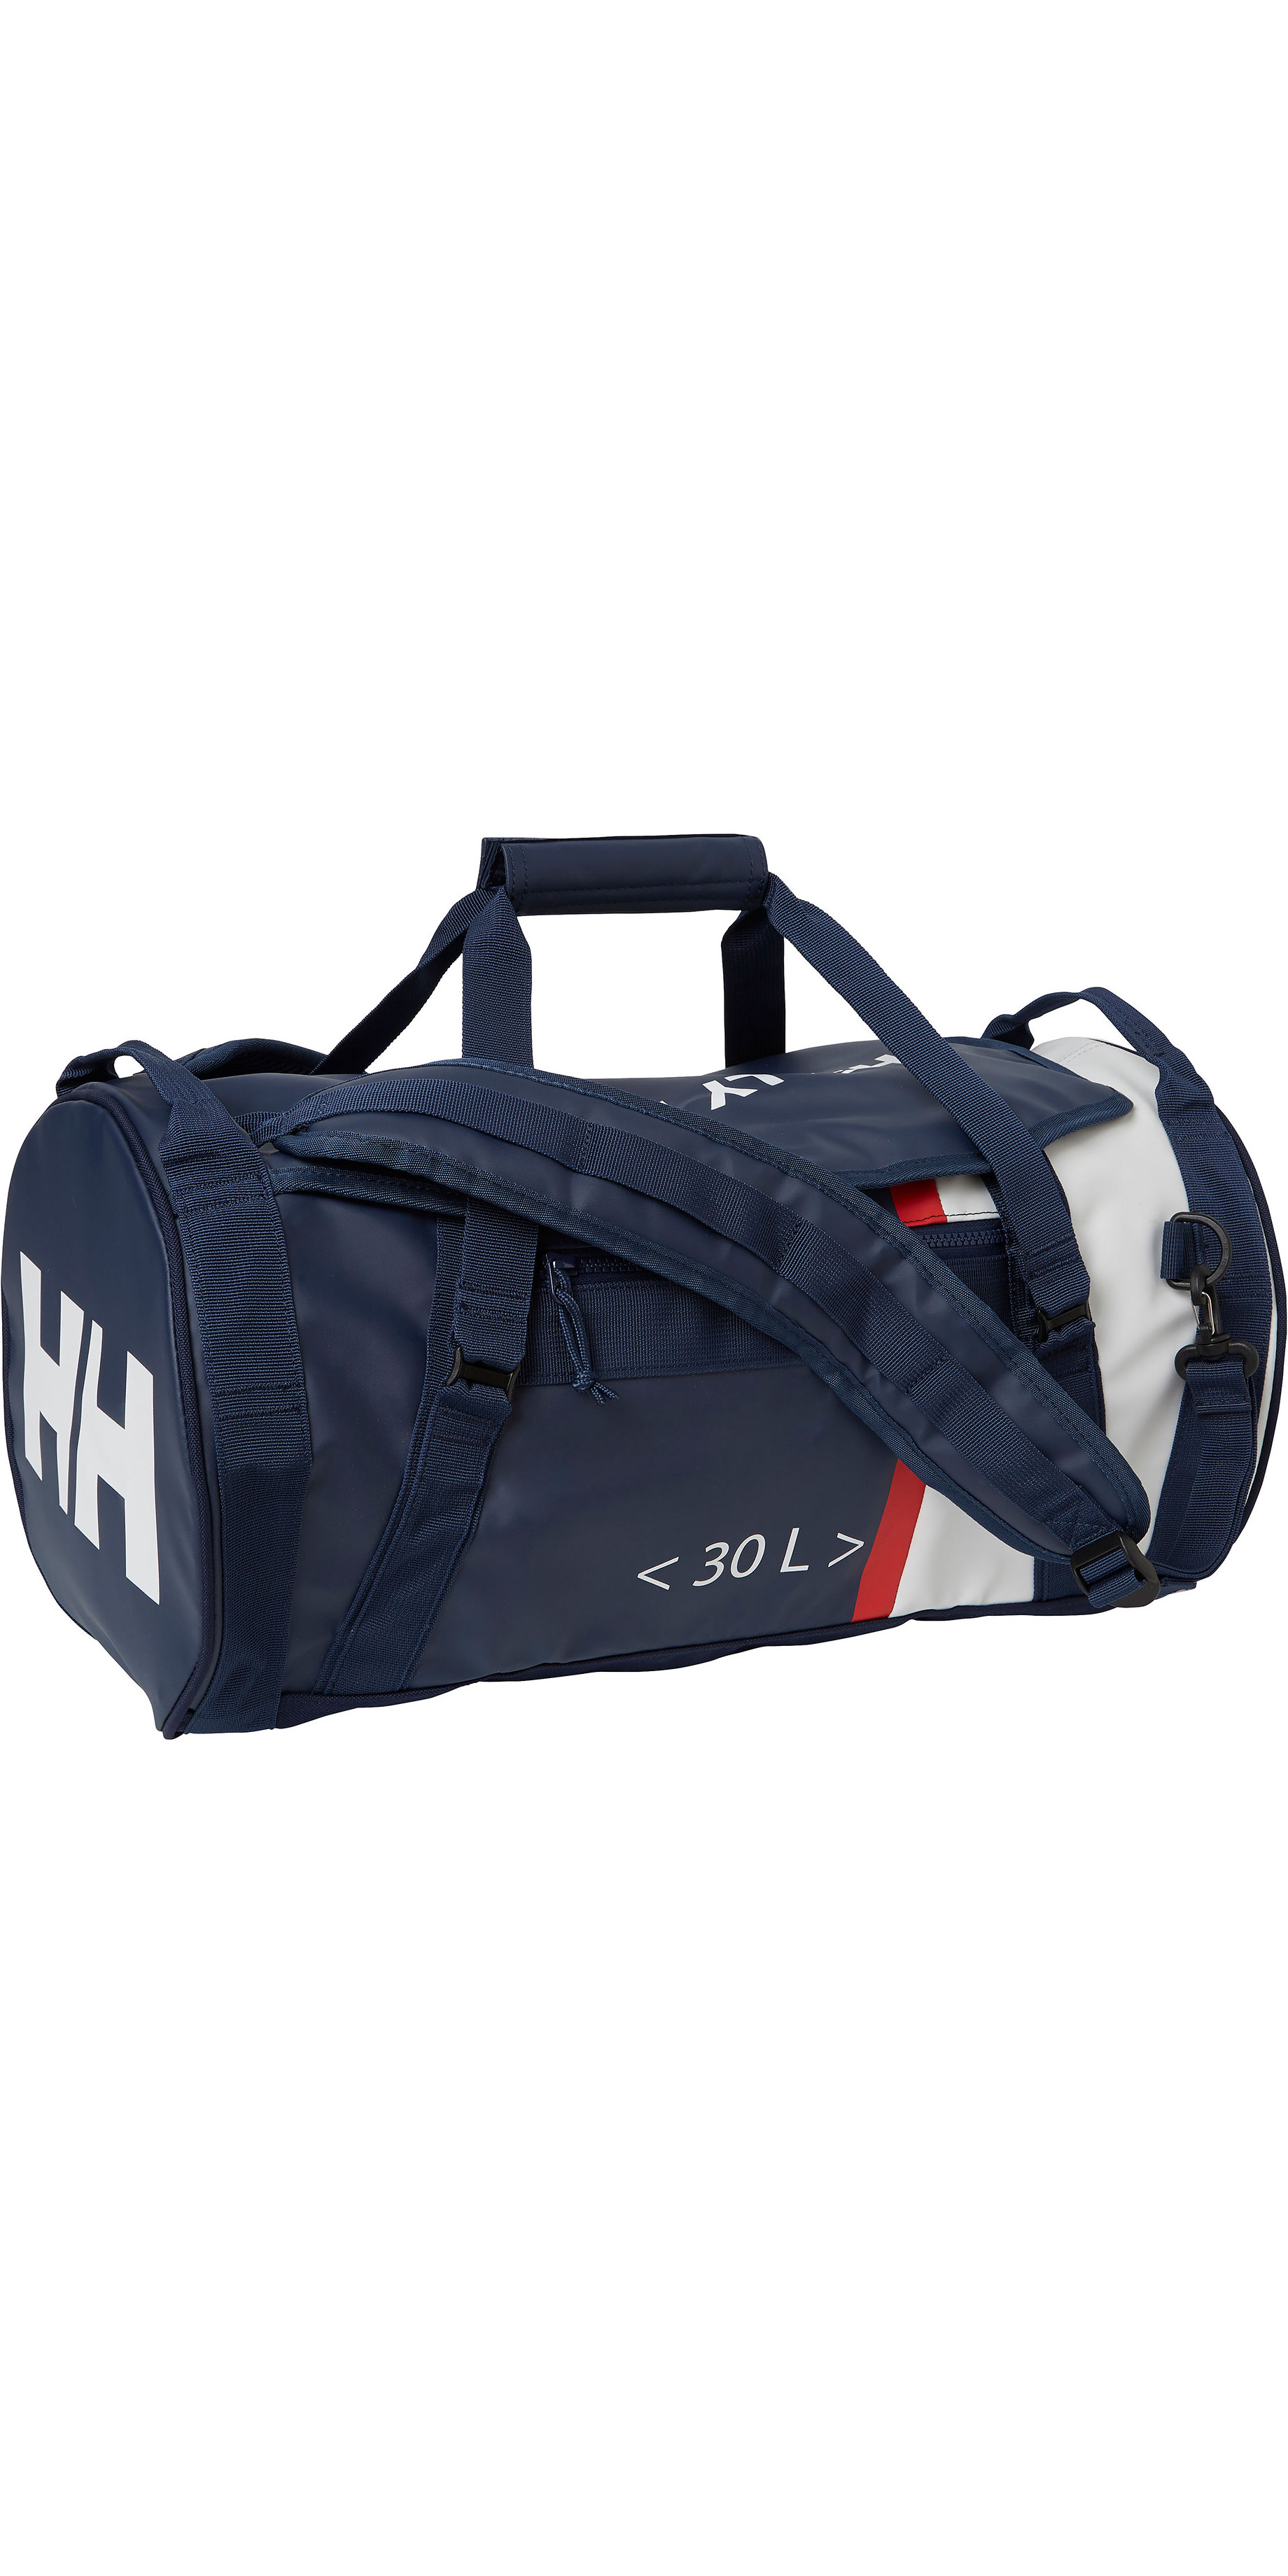 03768f51a2 2019 Helly Hansen Hh 30L Duffel Bag 2 Evening Blue 68006 - Holdall -  Luggage Dry Bags - by   Wetsuit Outlet